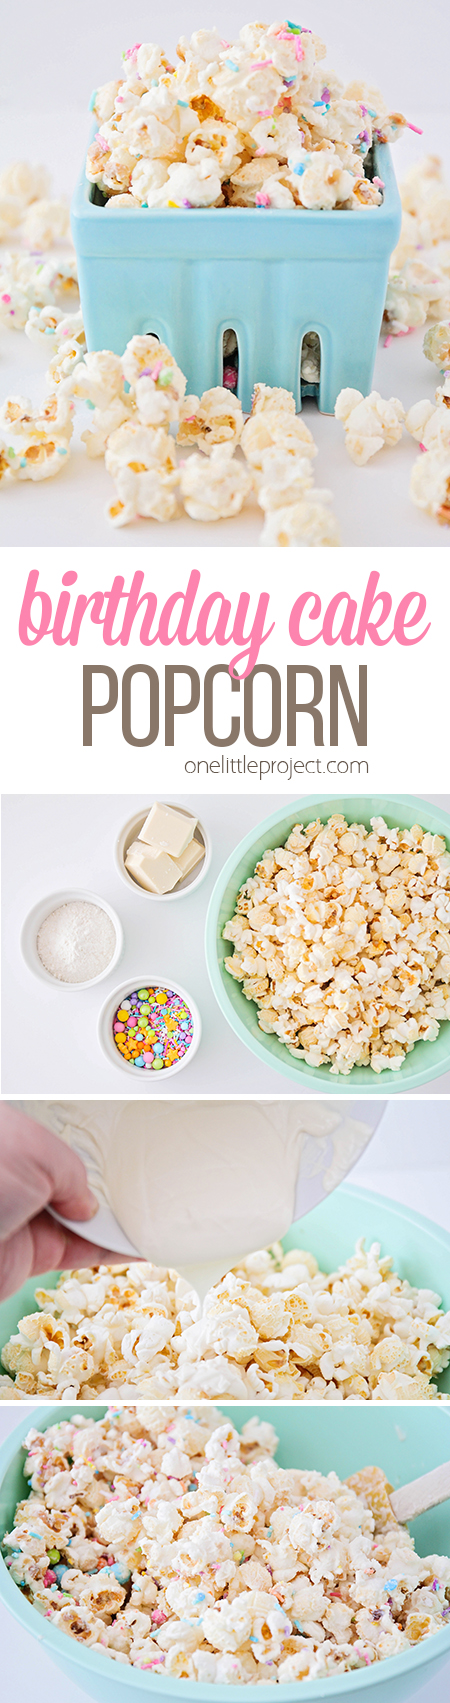 This delicious and fun birthday cake popcorn has only four ingredients, and has a sweet birthday cake flavor. It's the perfect treat for celebrating birthdays, or just for snacking!